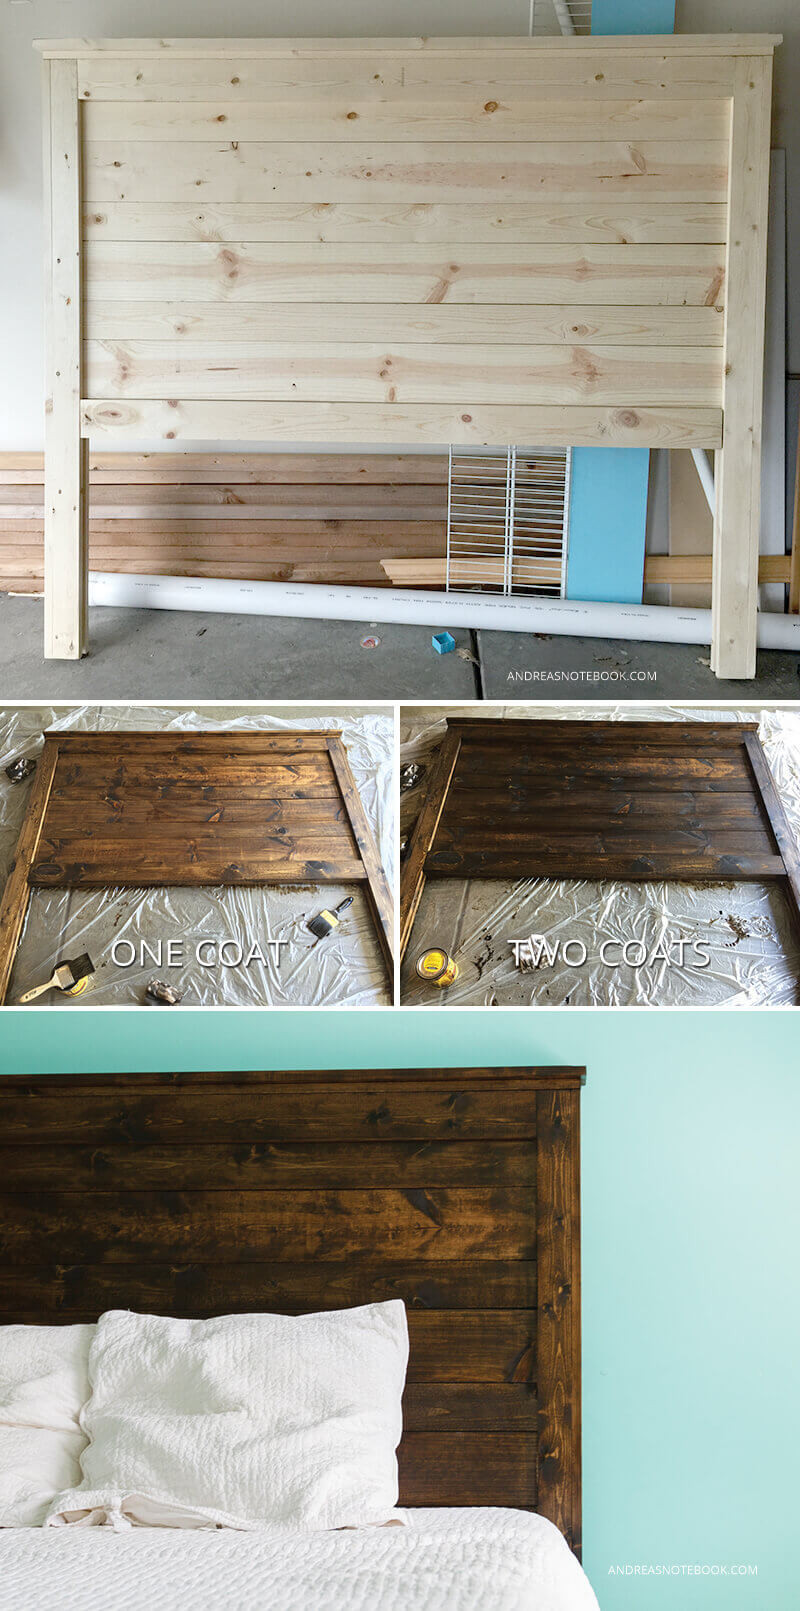 Best ideas about DIY Wooden Ideas . Save or Pin 32 Best DIY Wood Craft Projects Ideas and Designs for 2019 Now.